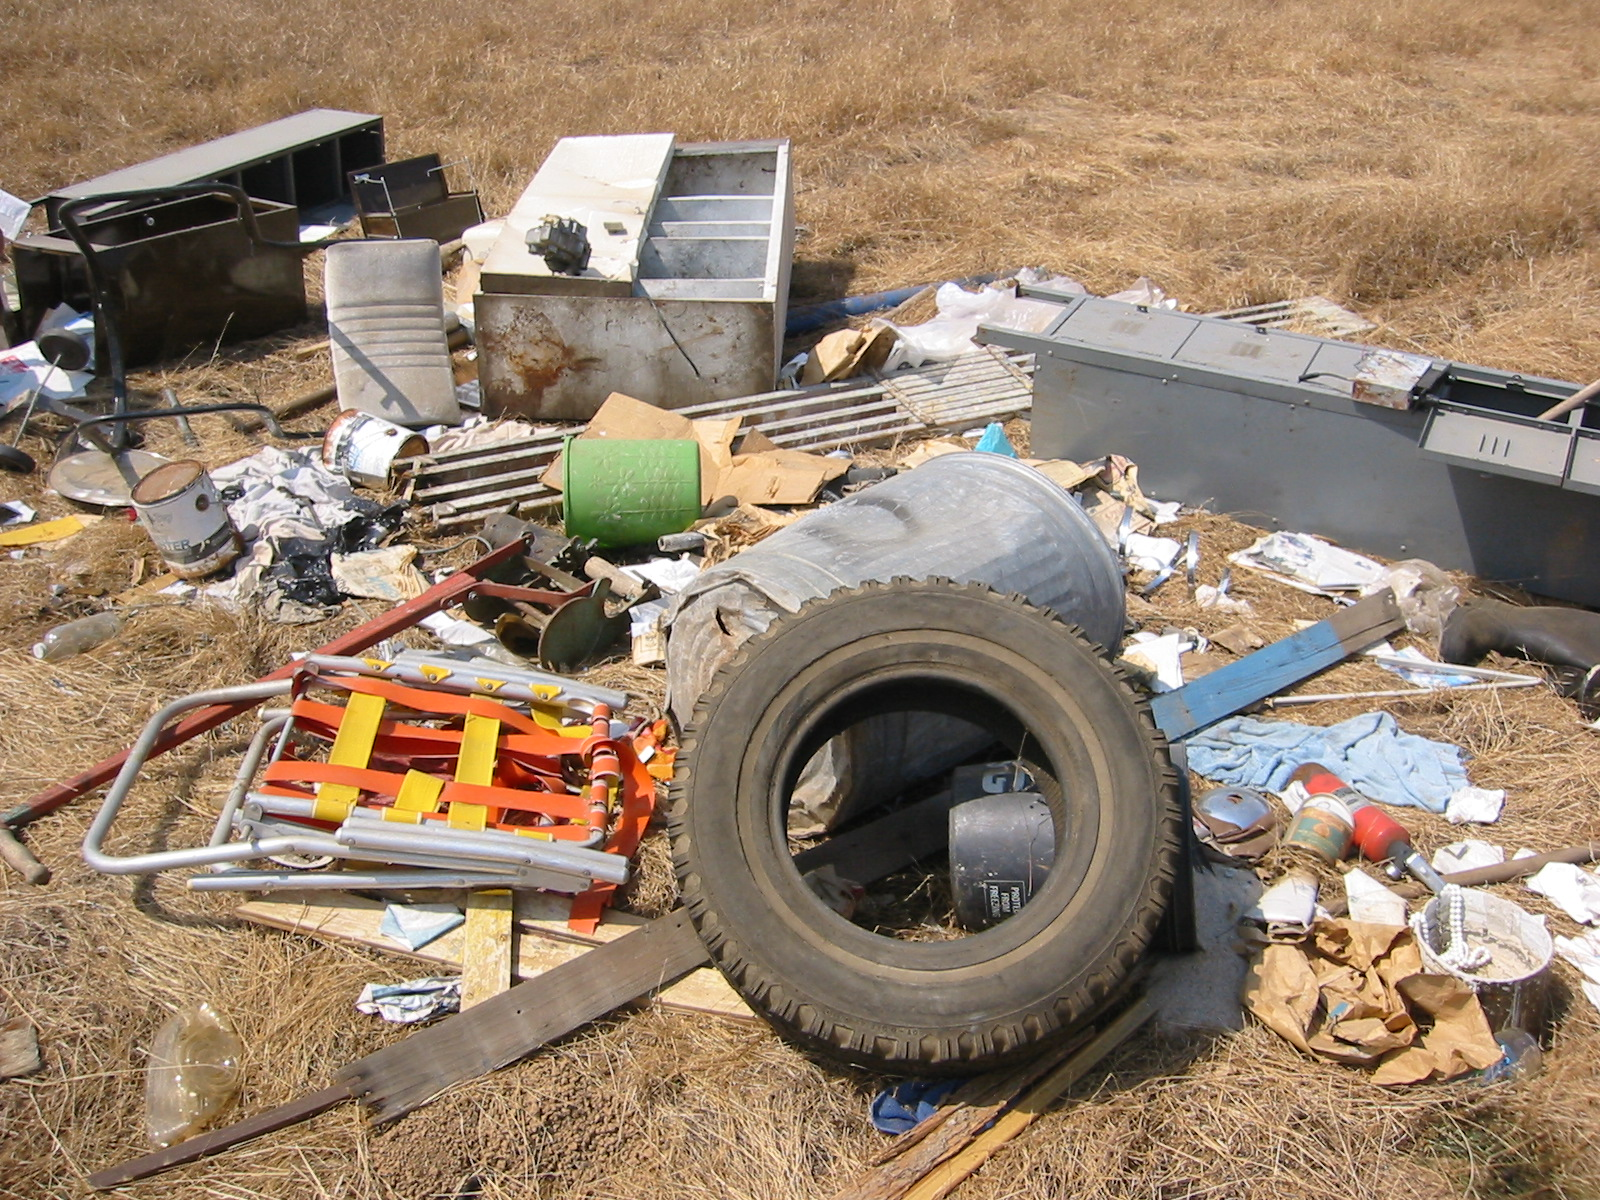 Accumulation of Trash and Debris